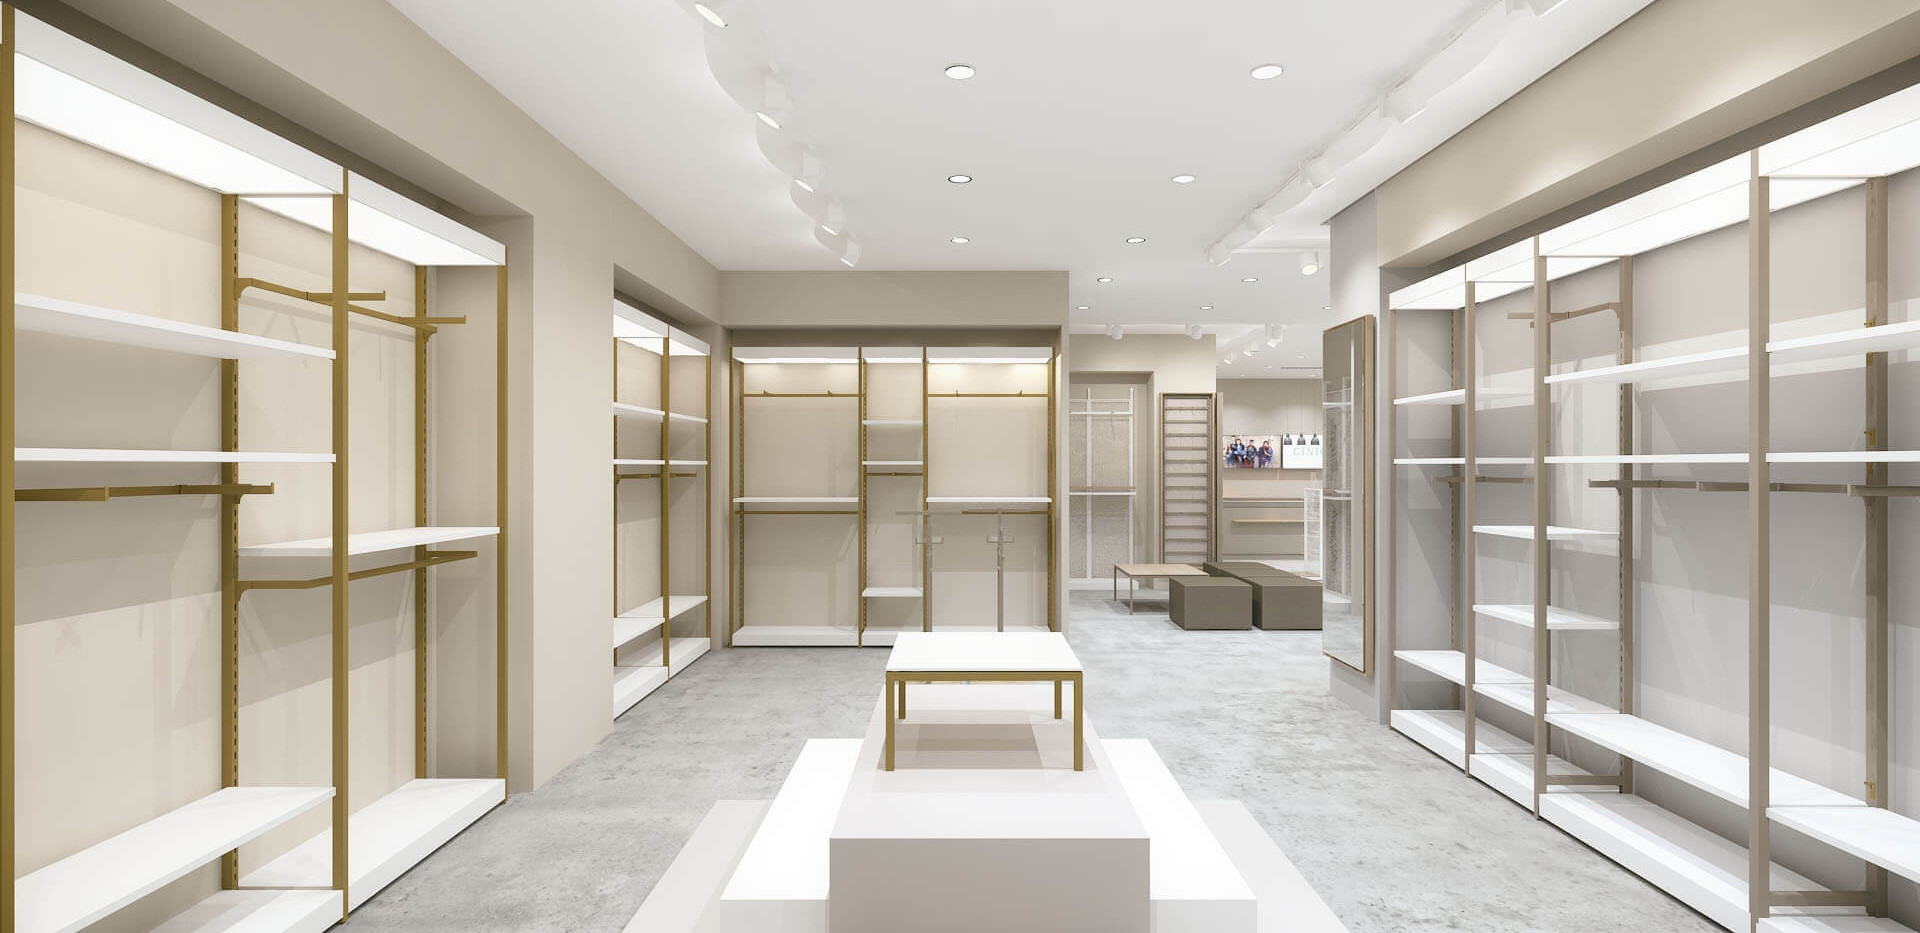 Cinici_-_Fashion_Store_Shop_Design-12.jp